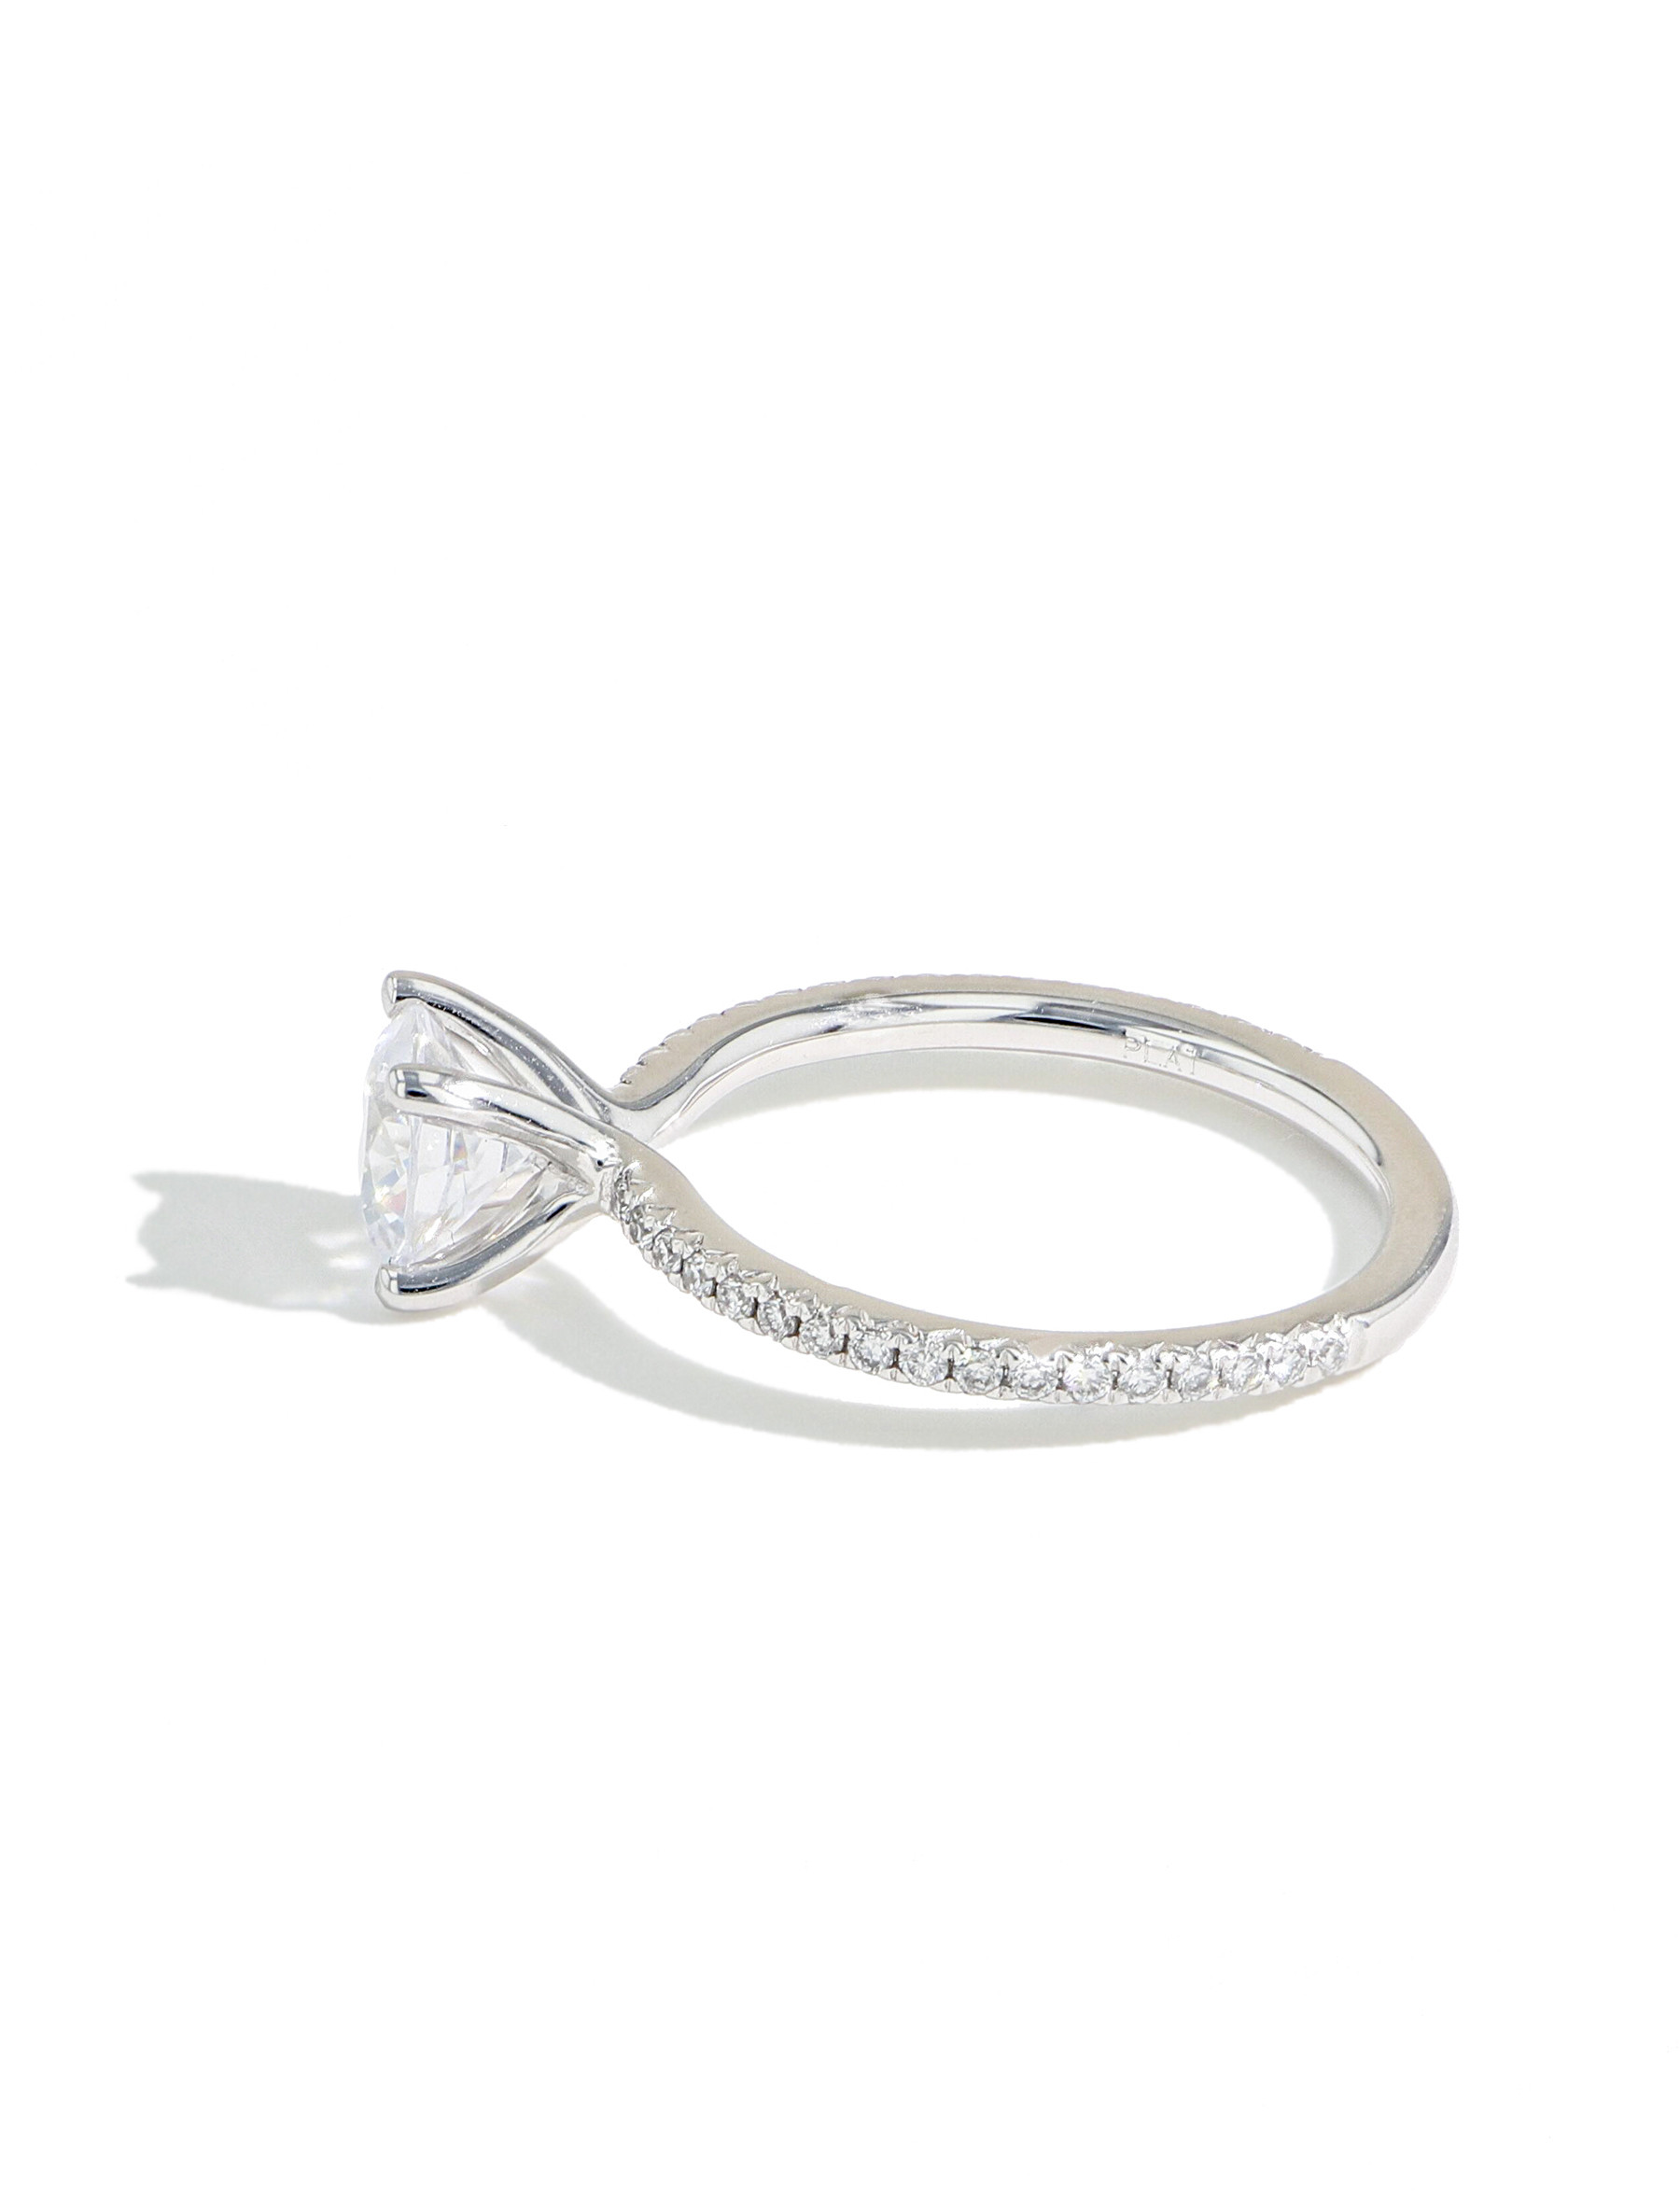 The Round Solitaire Pave Engagement Ring in Platinum side view